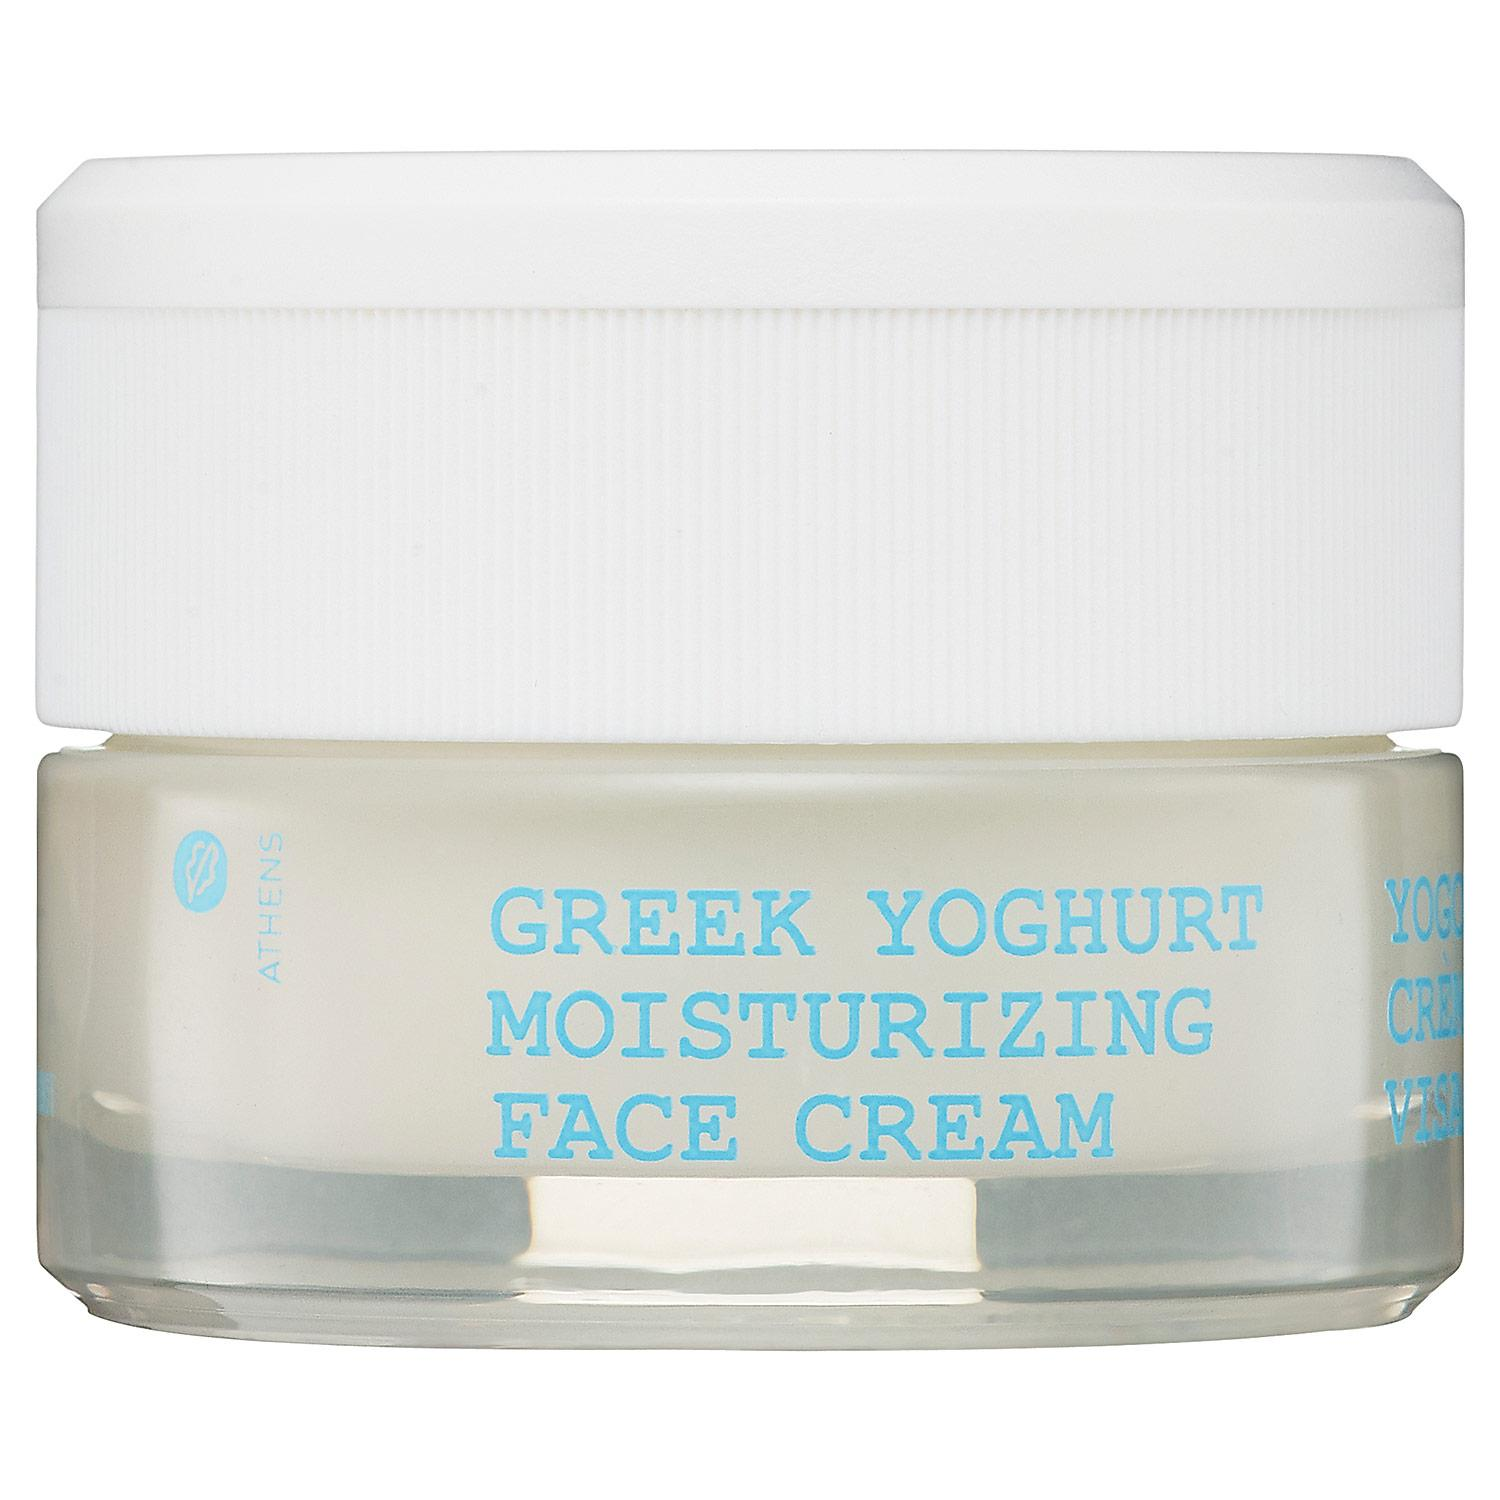 Greek Yoghurt Moisturizing Face Cream